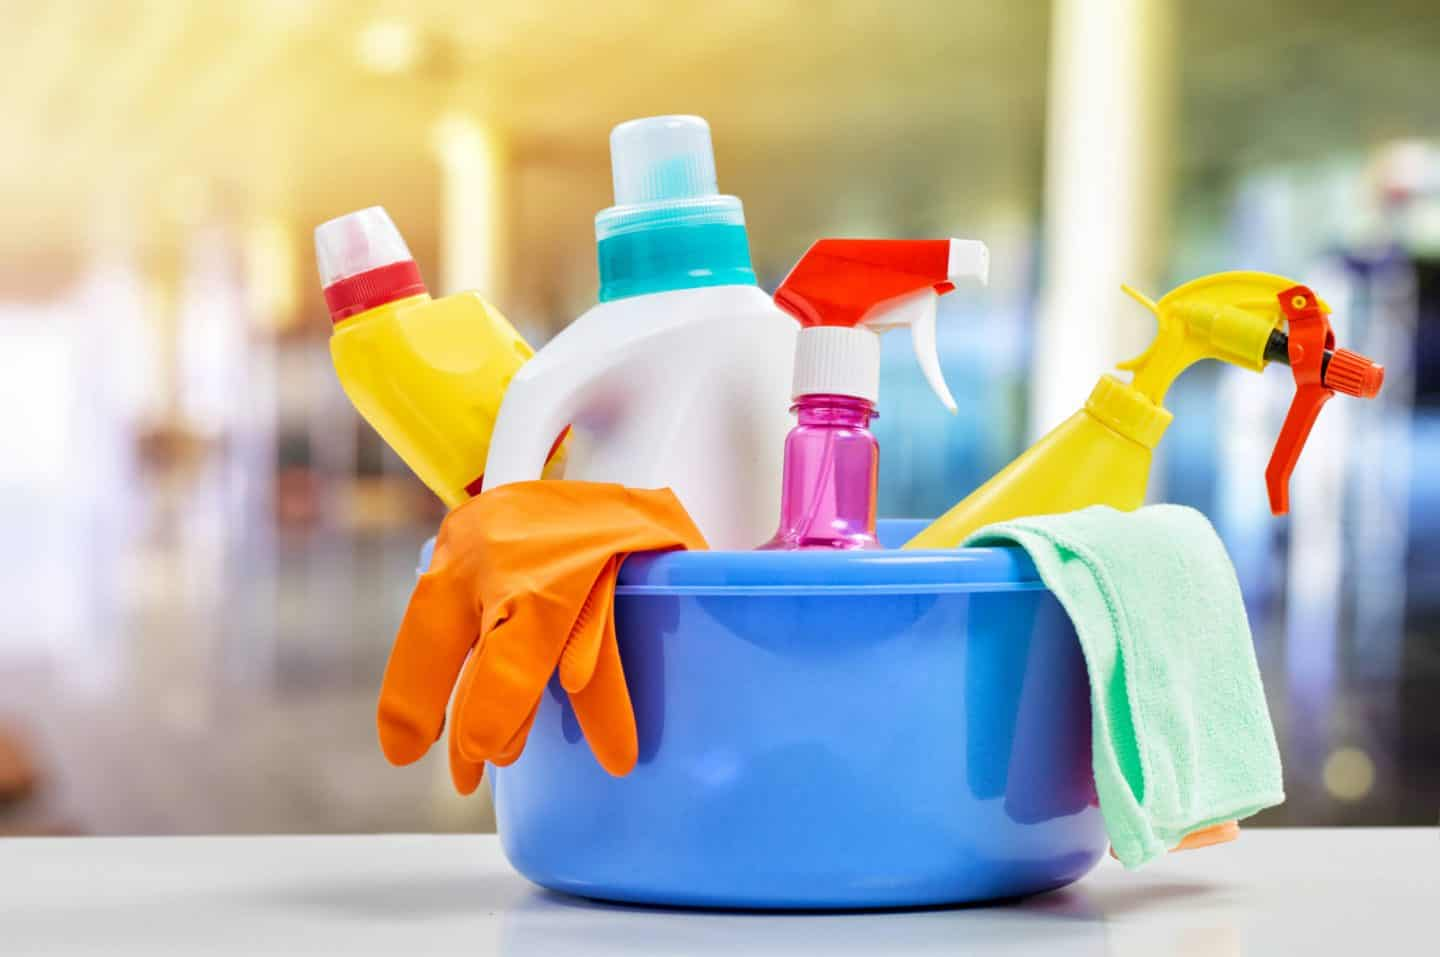 Choosing Cleaning Products That are Right for Your Home